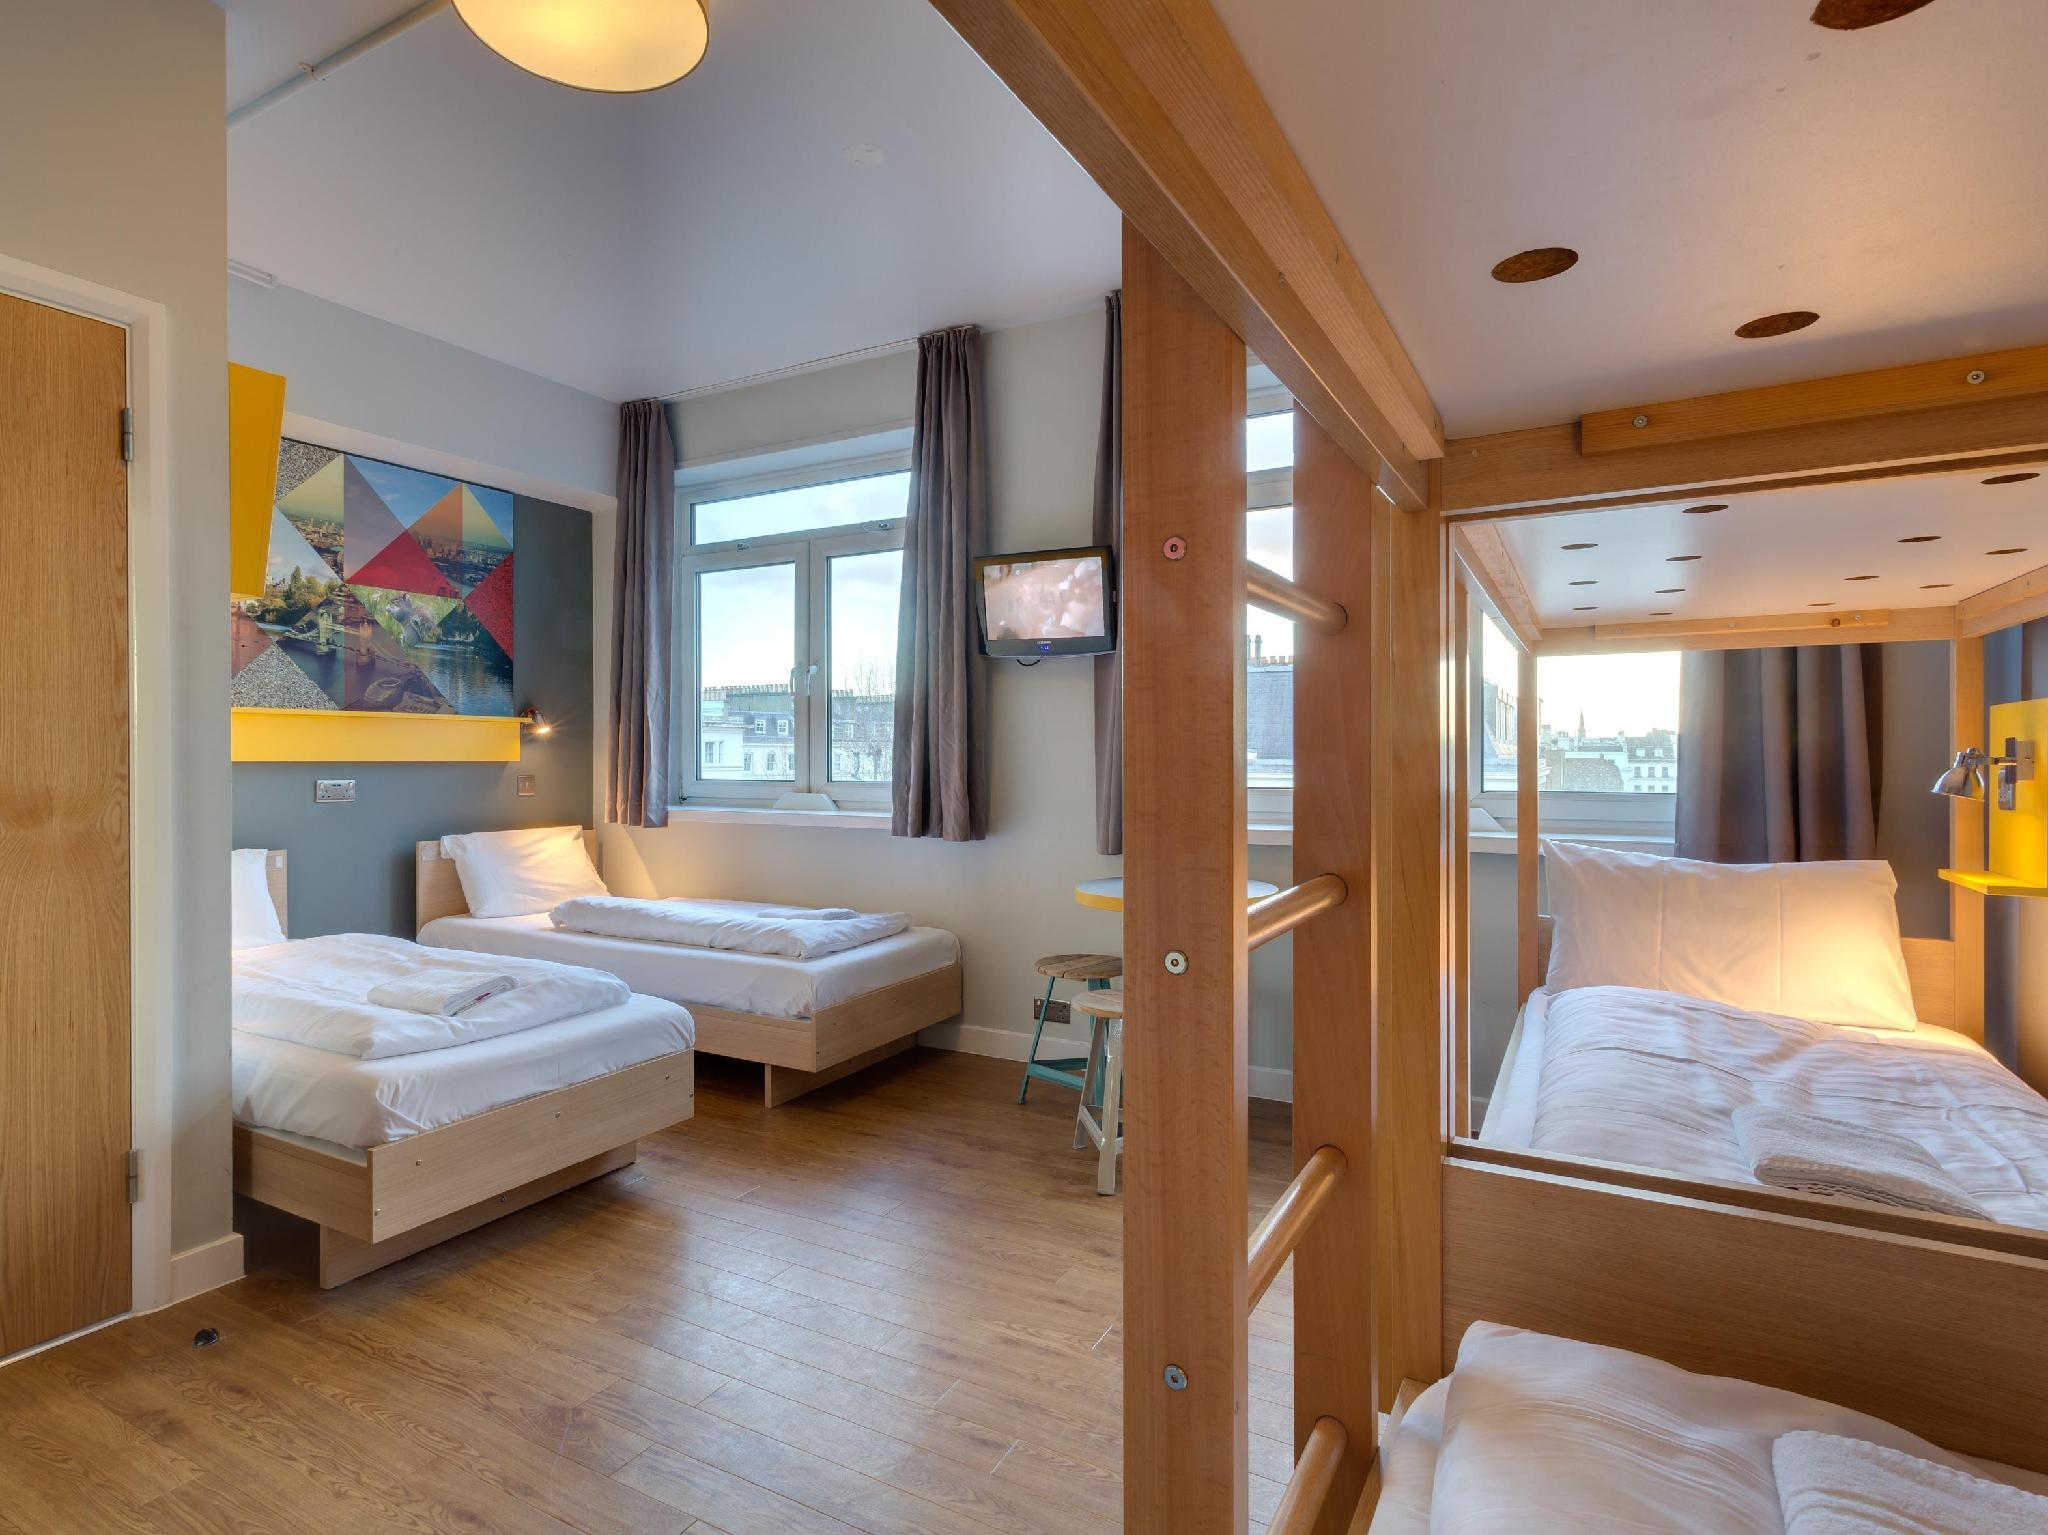 5-Bed Room